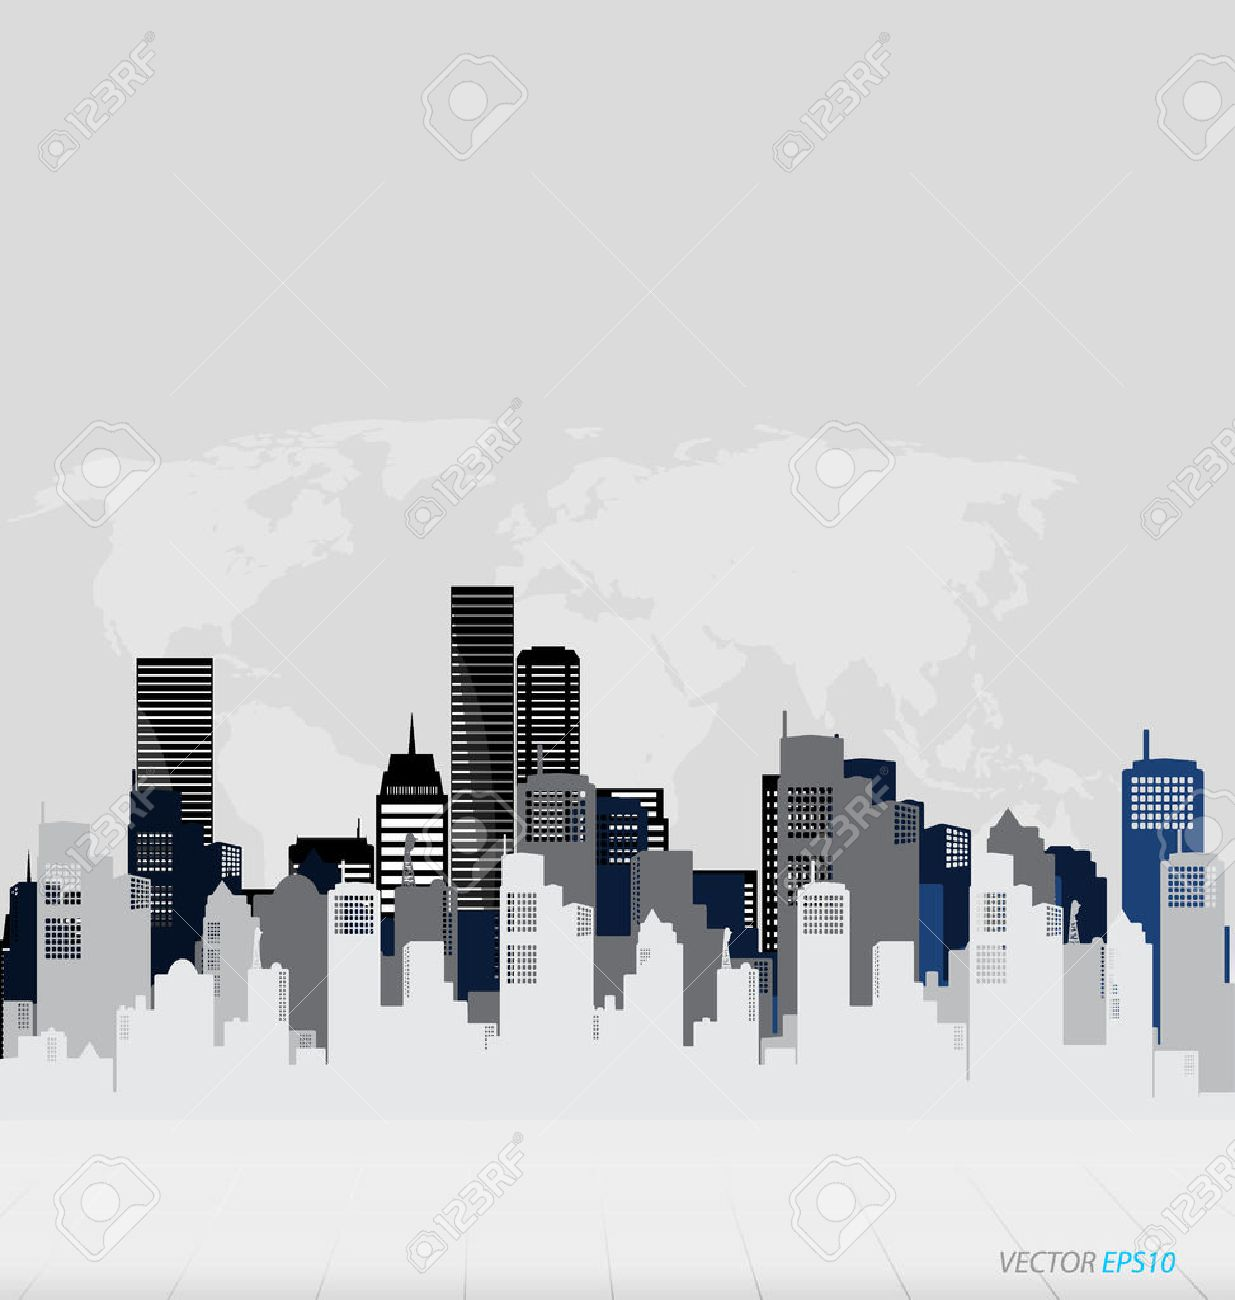 Creative building design template, for your company, vector illustration - 44865001